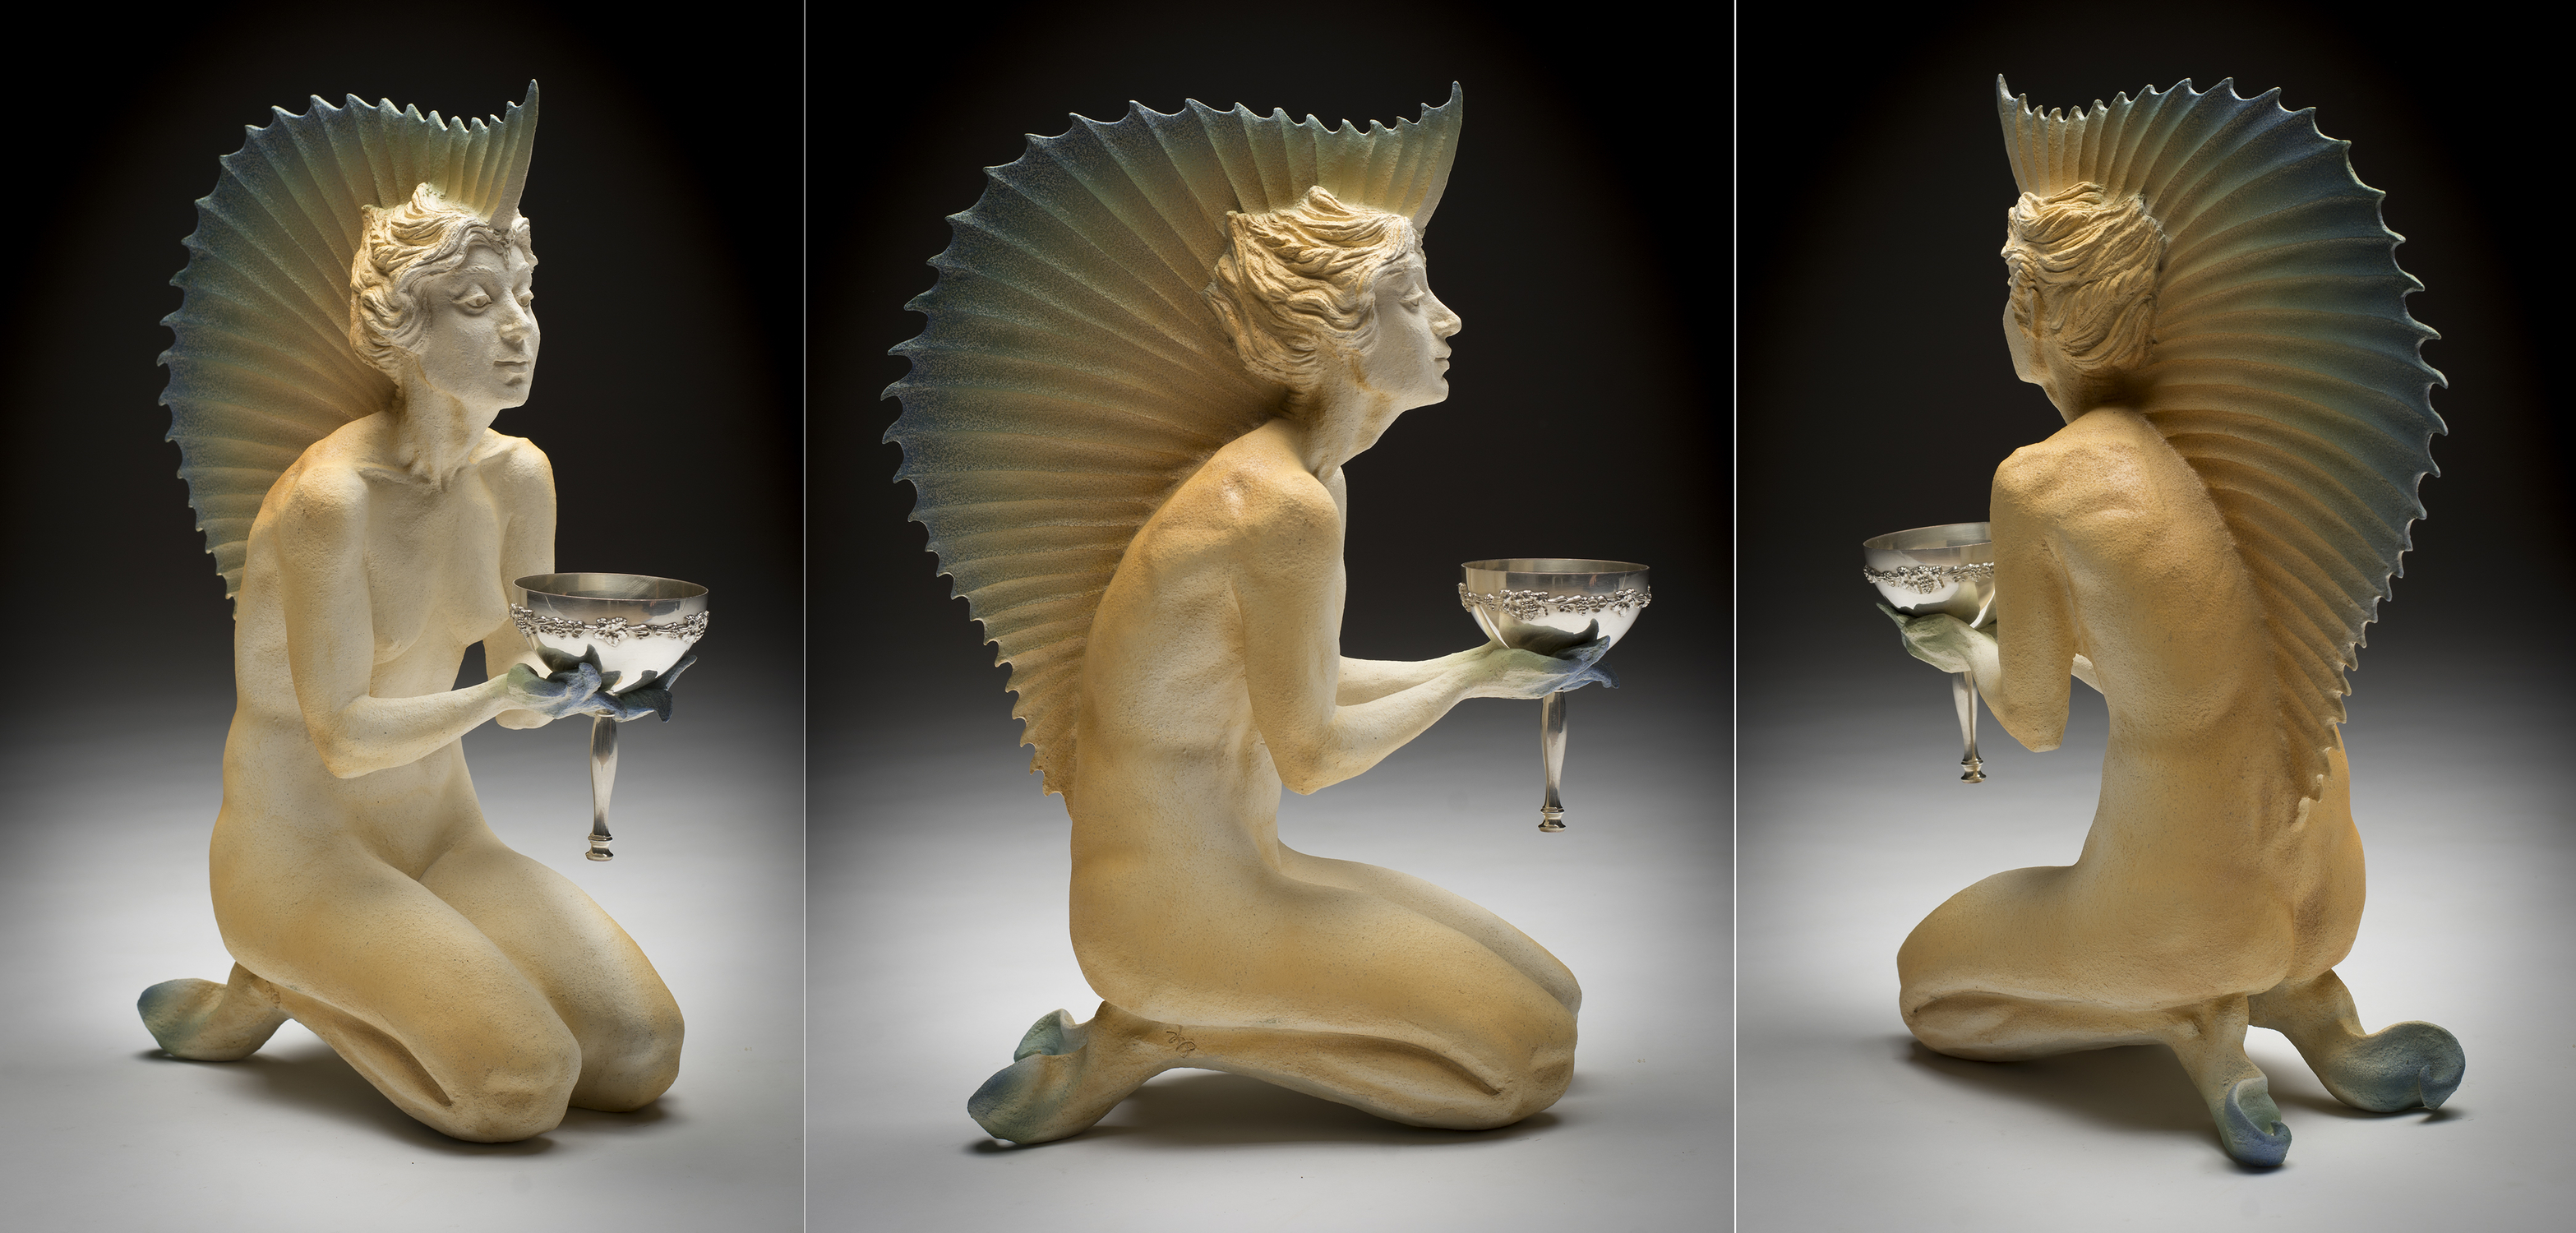 Amphitrite - Sailfish Girl Artwork by Colin  Poole